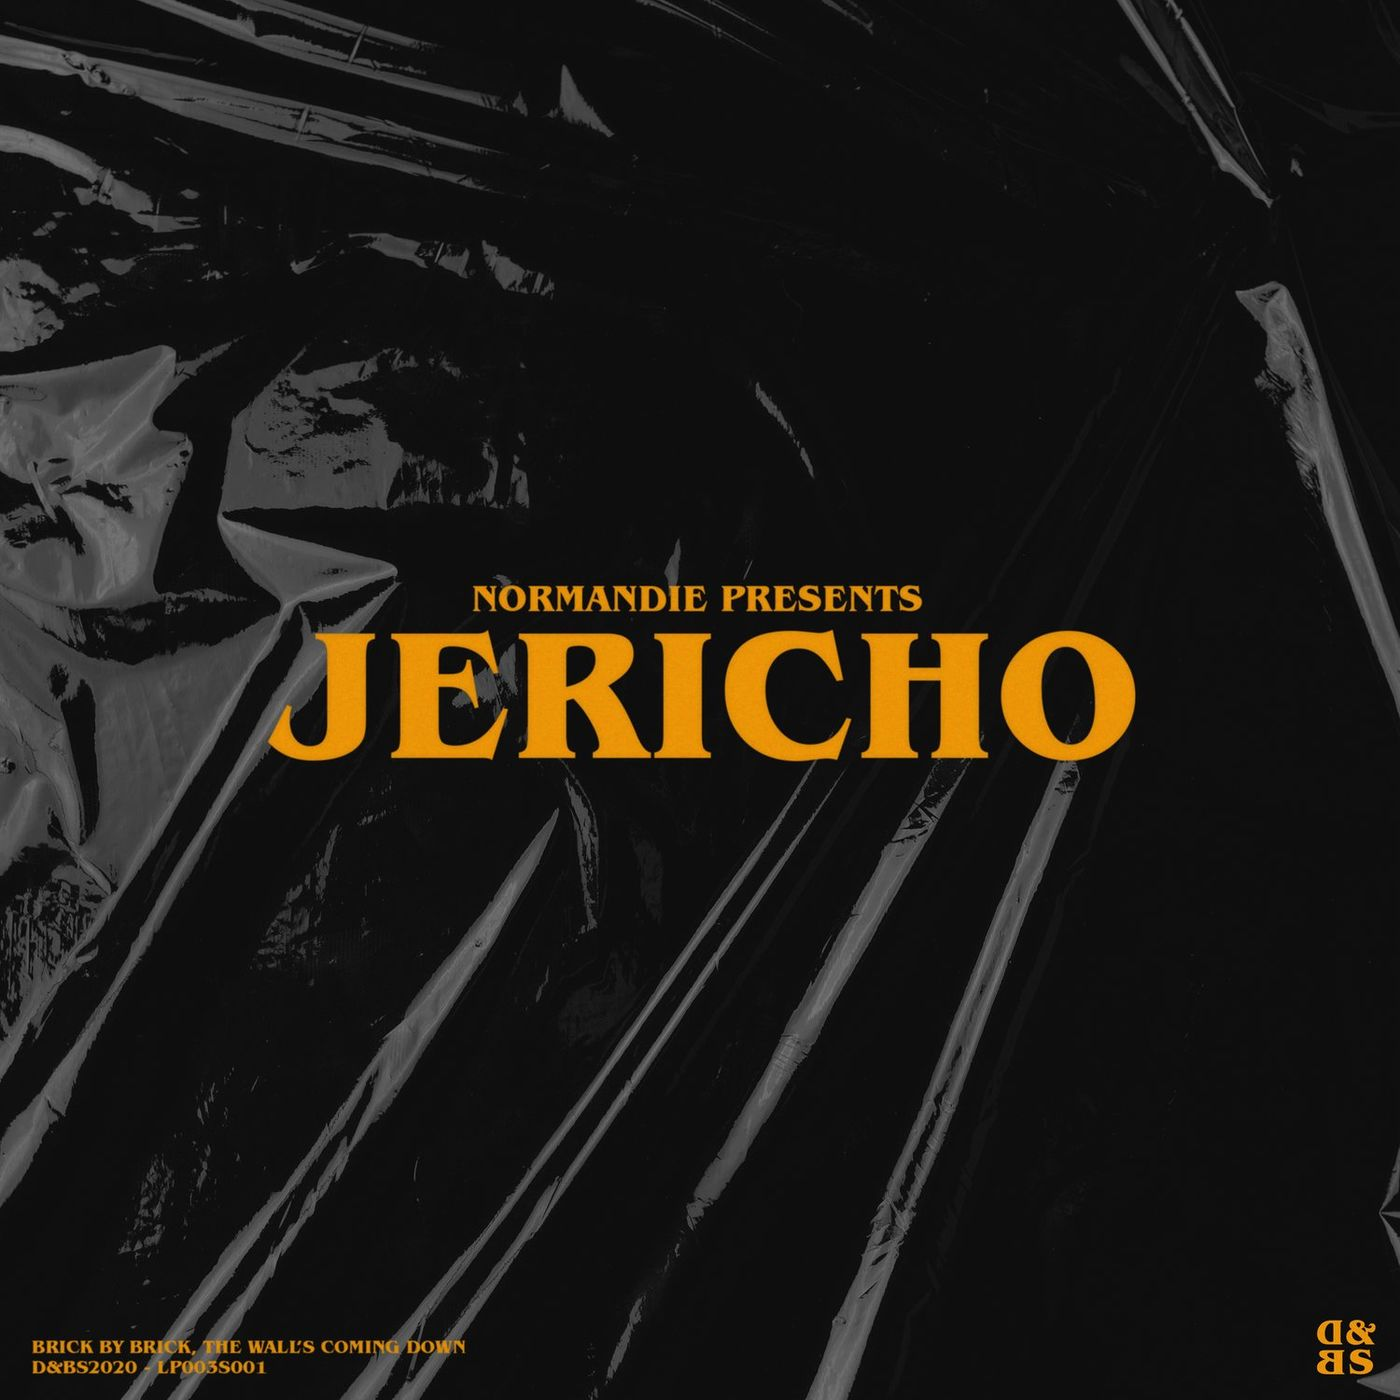 Normandie - Jericho [single] (2020)